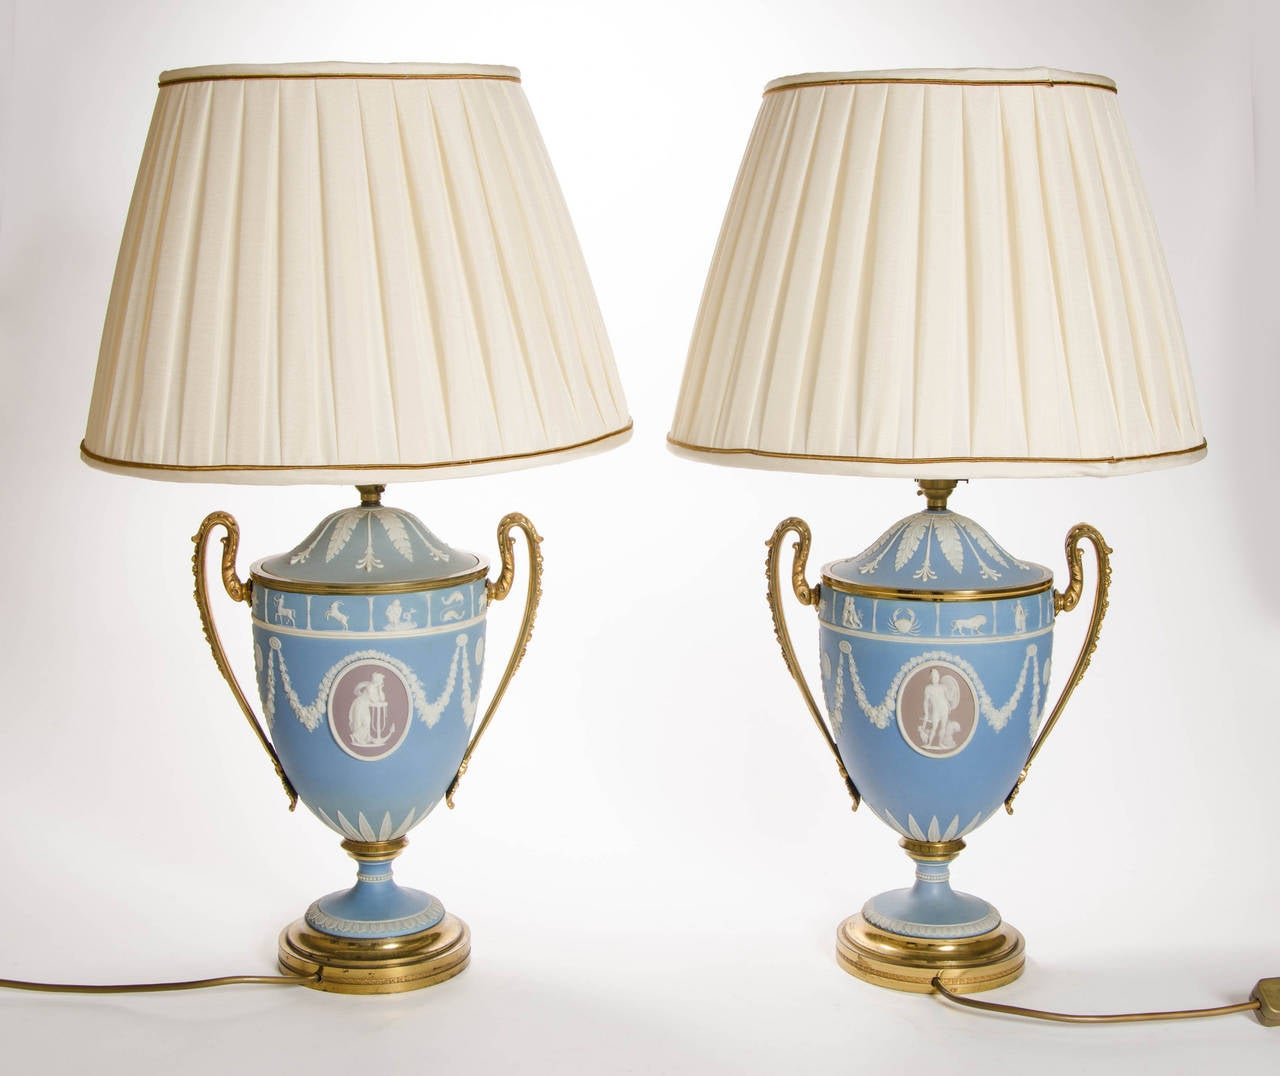 A Pair of Wedgwood Vases as Lamps with ormolu handles and bases 10